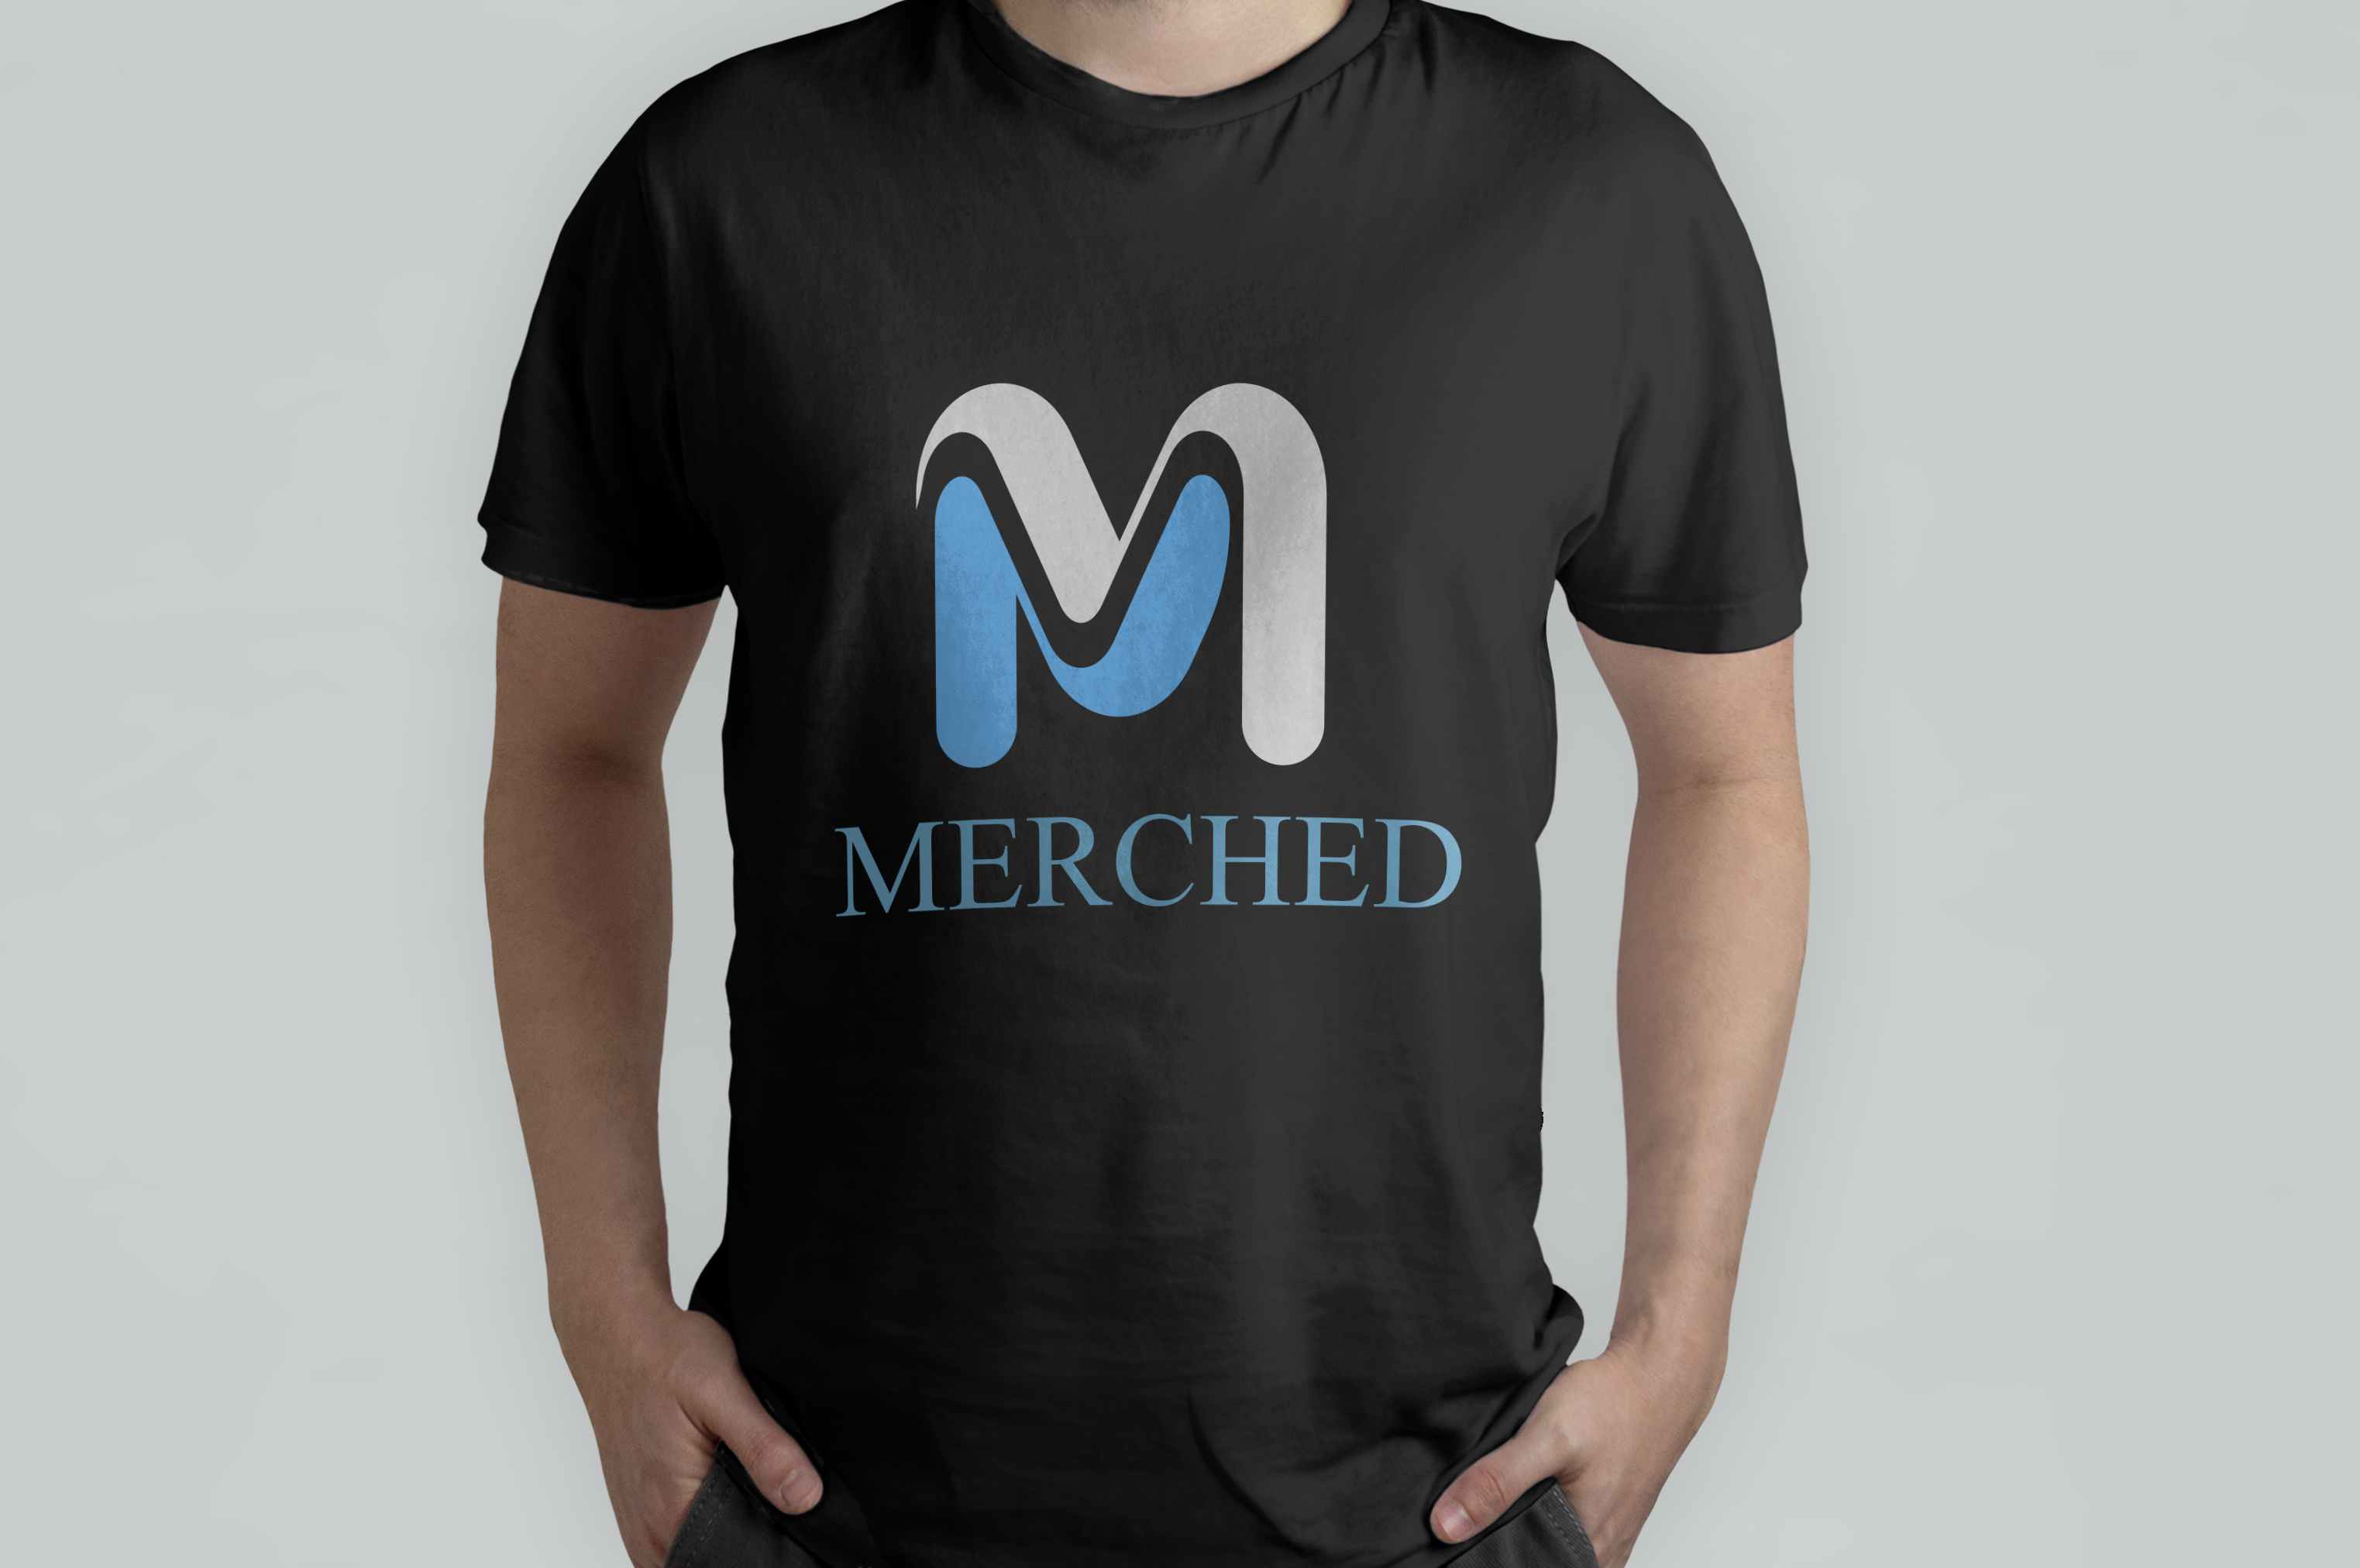 I will do make a t-shirt design with source file